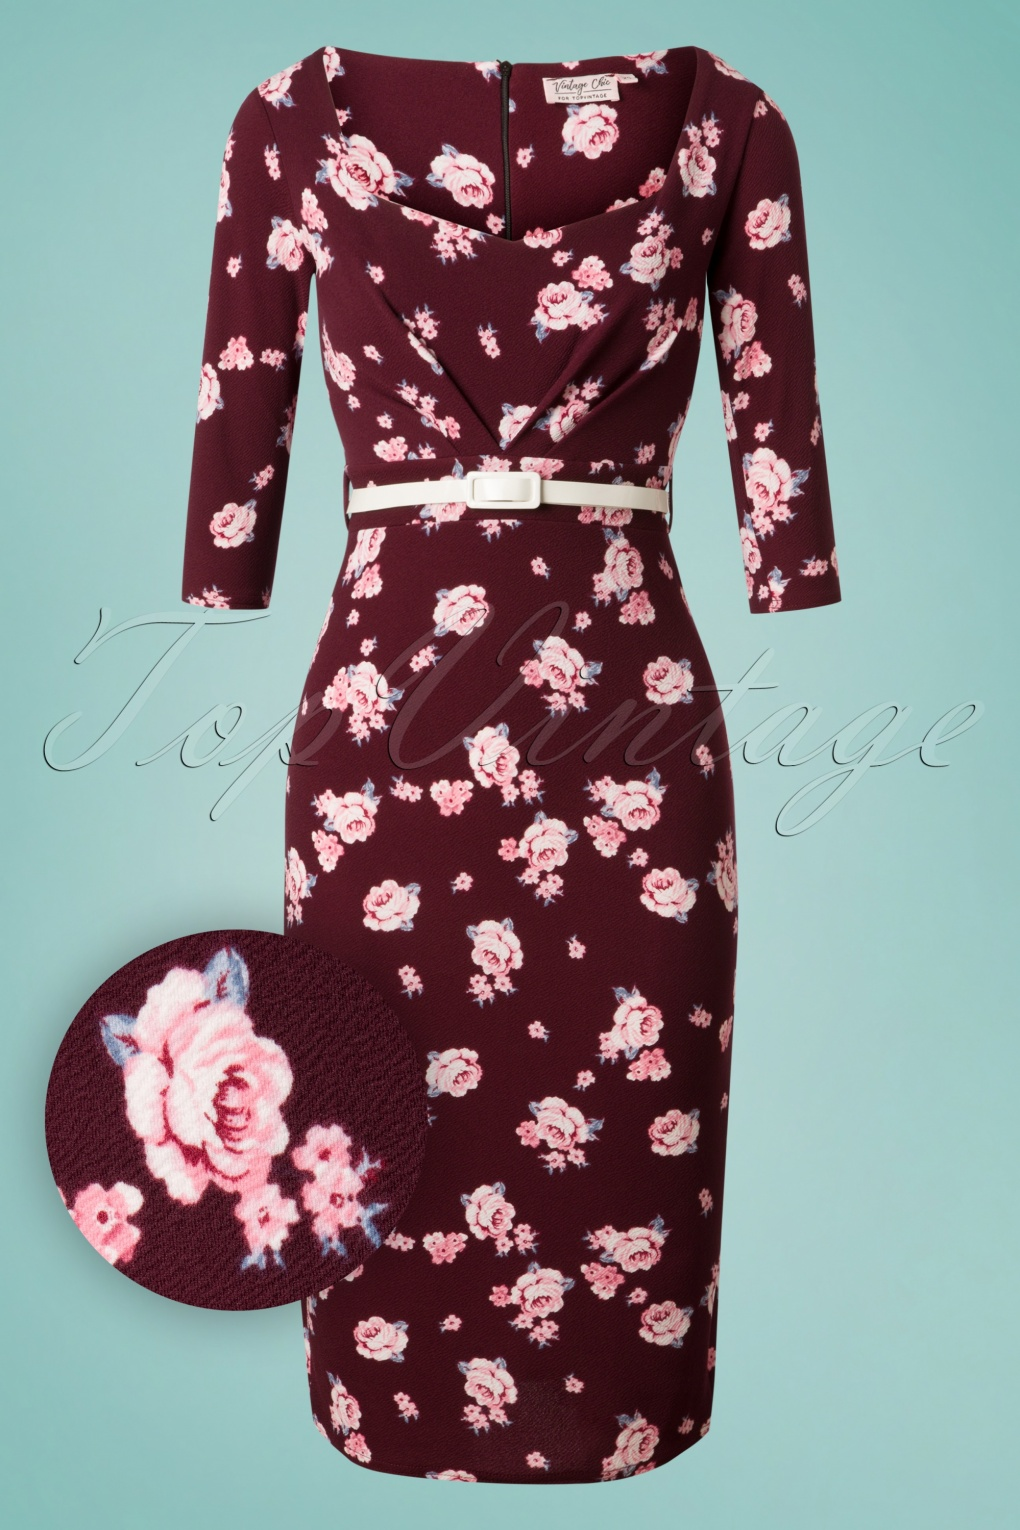 What Did Women Wear in the 1950s? 1950s Fashion Guide 50s Ruby Floral Pencil Dress in Wine £51.28 AT vintagedancer.com